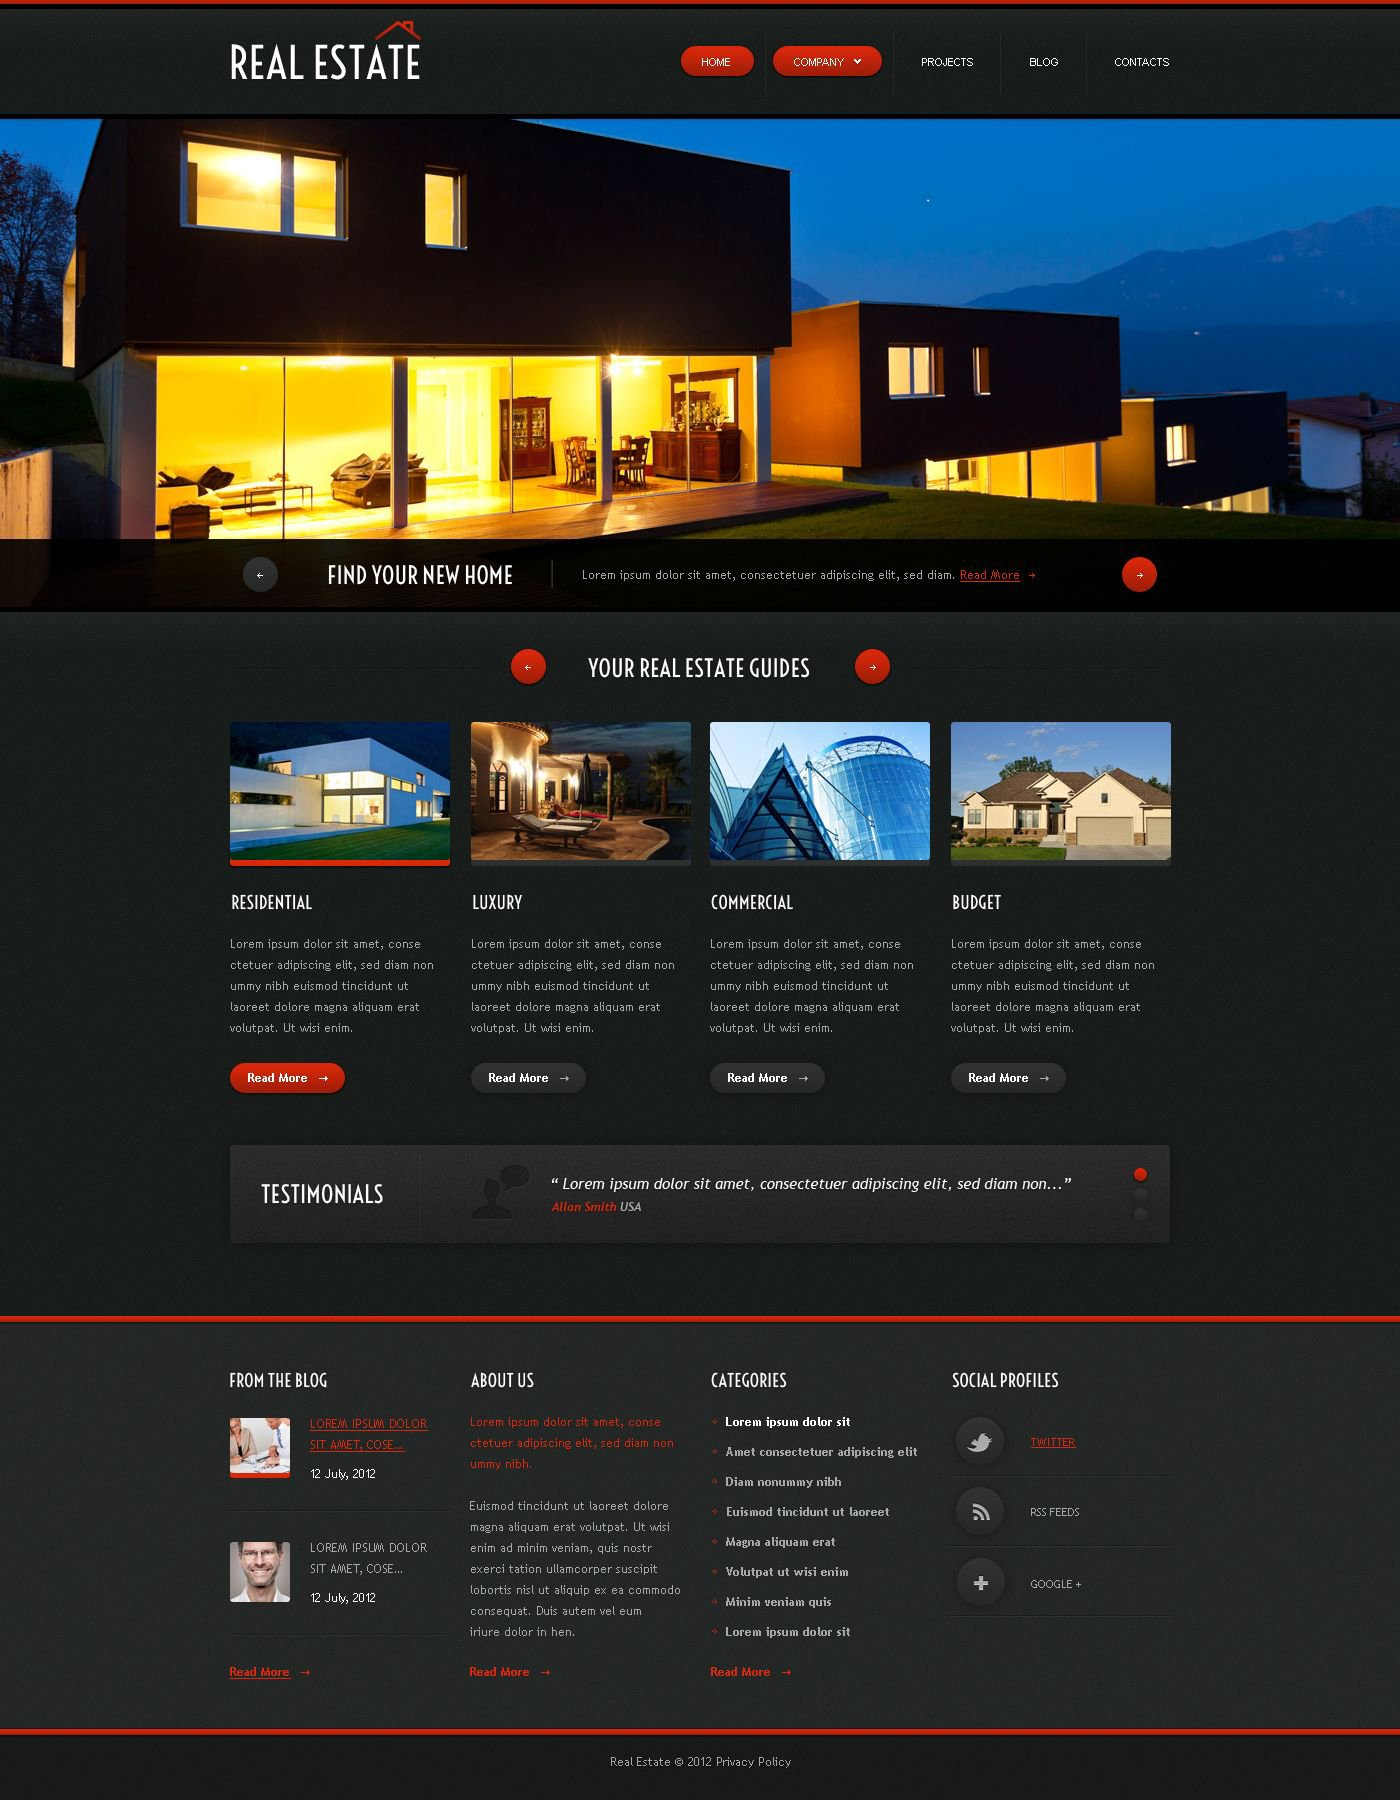 The Real Estate Agency Responsive Javascript Animated Design 52976, one of the best website templates of its kind (real estate, most popular), also known as real estate agency website template, services website template, house website template, home website template, apartment website template, buildings website template, finance website template, loan website template, sales website template, rentals website template, management website template, search website template, team website template, money website template, foreclosure website template, estimator website template, investment website template, development website template, constructions website template, architecture website template, engineering website template, apartment website template, sale website template, rent website template, arch and related with real estate agency, services, house, home, apartment, buildings, finance, loan, sales, rentals, management, search, team, money, foreclosure, estimator, investment, development, constructions, architecture, engineering, apartment, sale, rent, arch, etc.